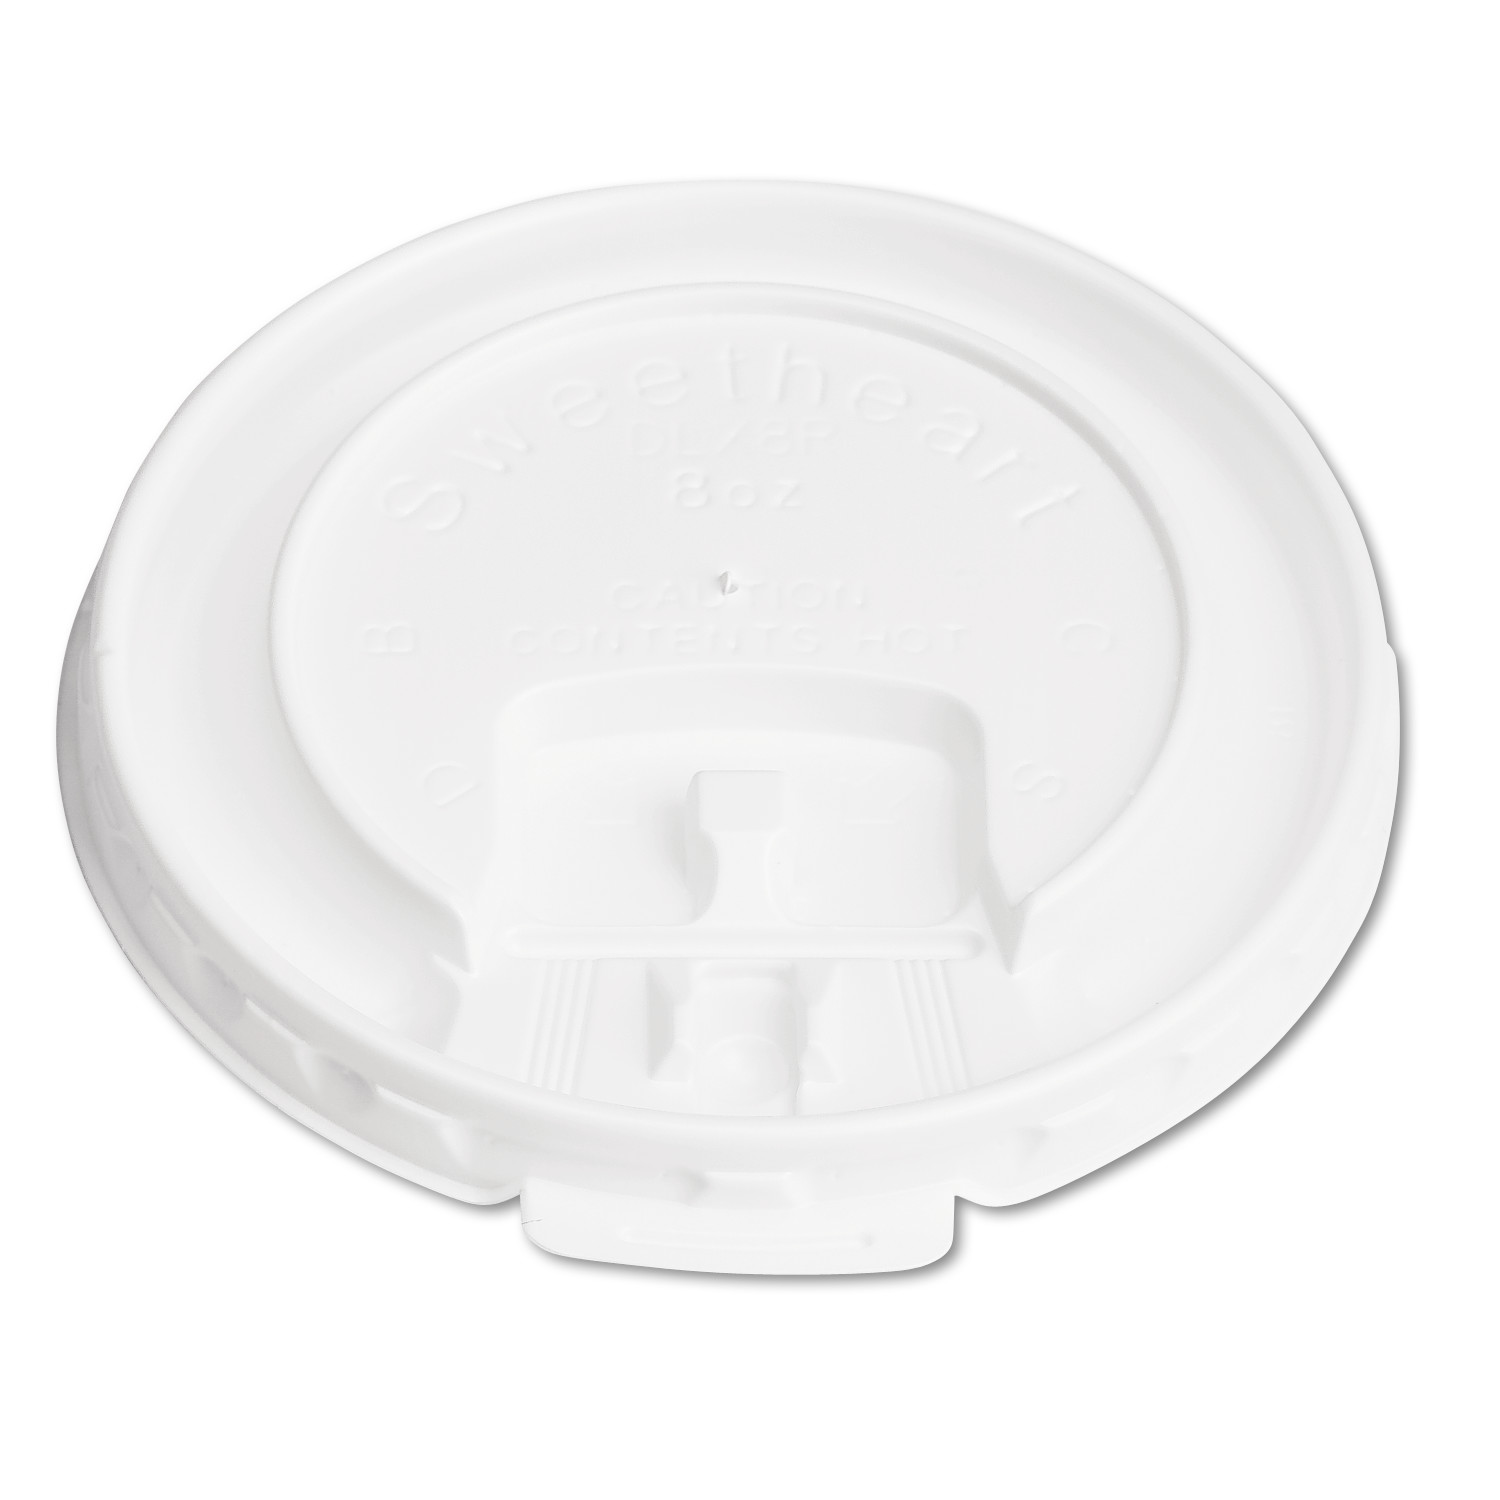 SOLO Cup Company Liftback & Lock Tab Cup Lids for Foam Cups, Lid, for SLOX8J, White, 2000 ct